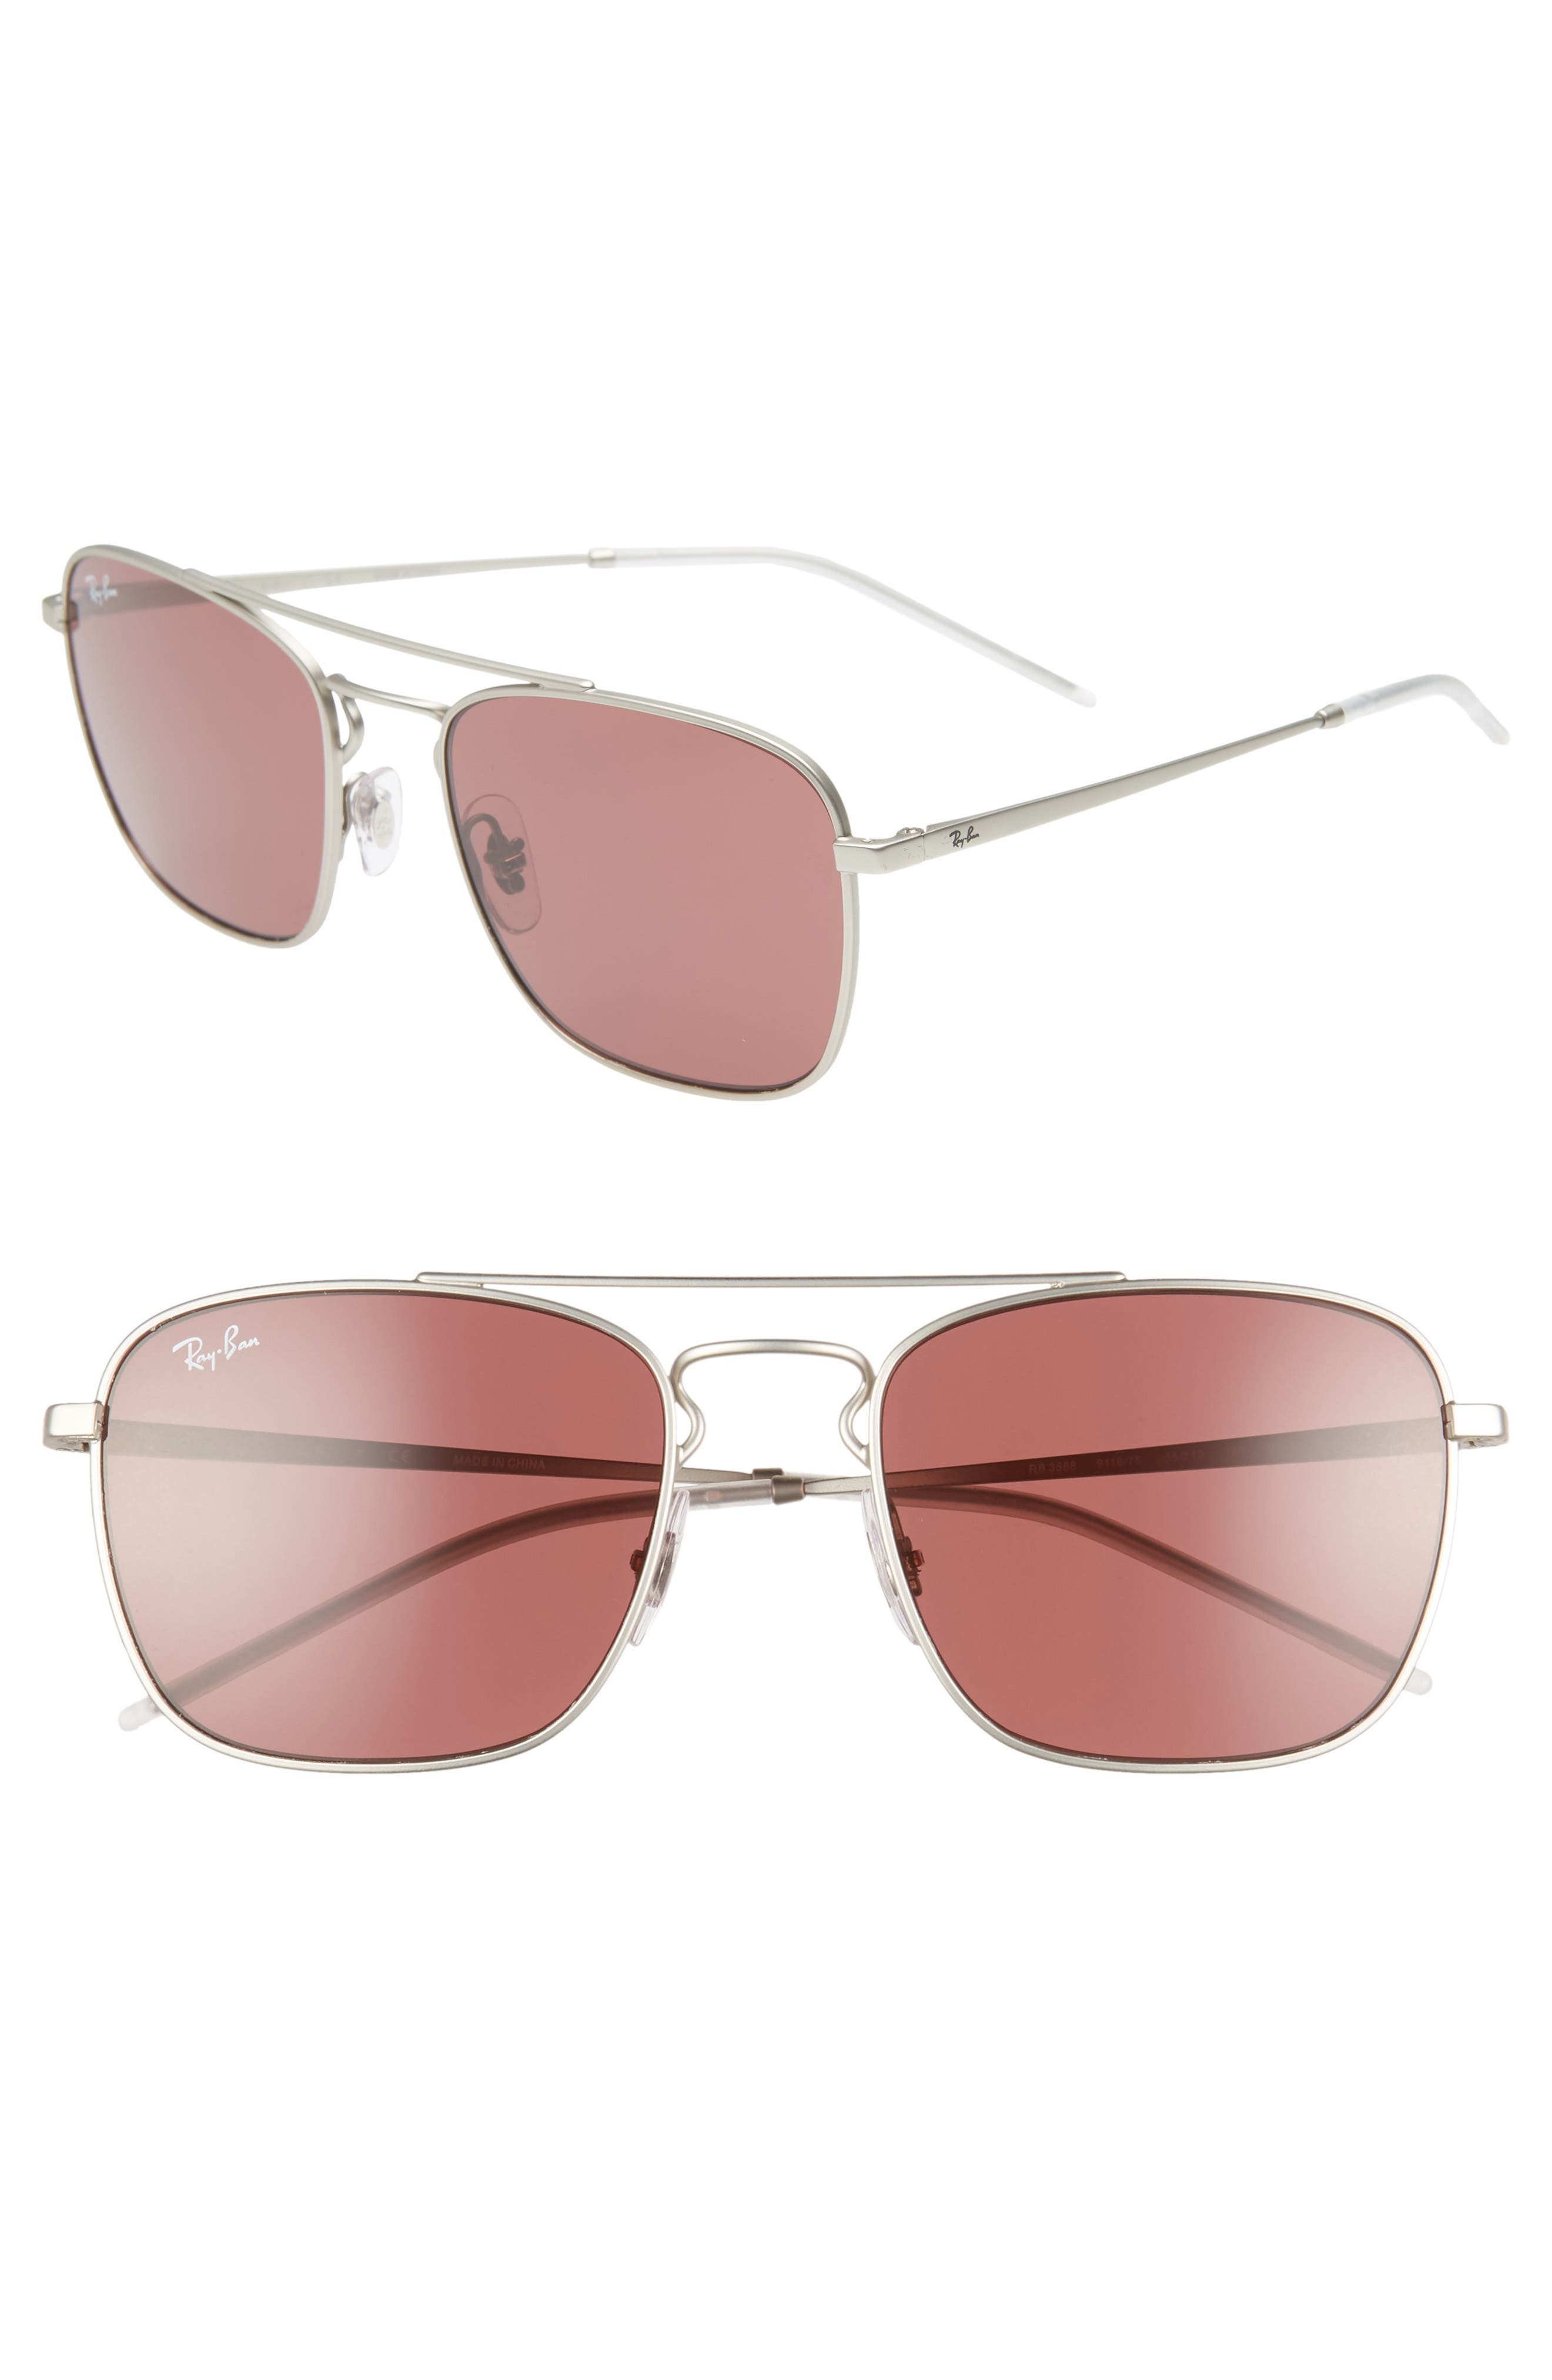 87a8914888d18 Ray-Ban 55Mm Square Sunglasses - Silver